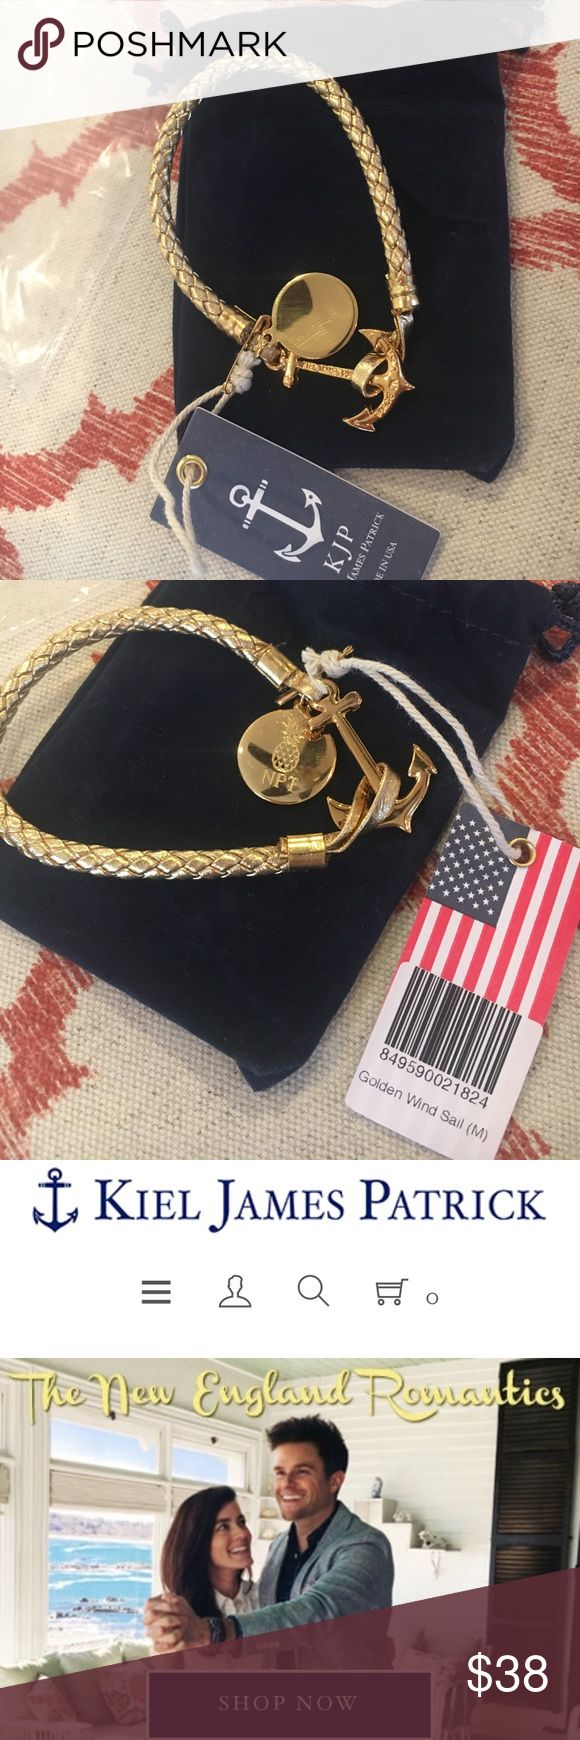 "NEW! Kiel James Patrick gold anchor bracelet NEW w/TAG! never worn. Gold metallic weave w/medallion (can be removed with pliers if you don't want that on the bracelet). Handmade locally in Rhode Island. Size medium (fits ~7.5"" wrist). Velvet drawstring bag can also be used to polish medallion. Kiel James Patrick Jewelry Bracelets"